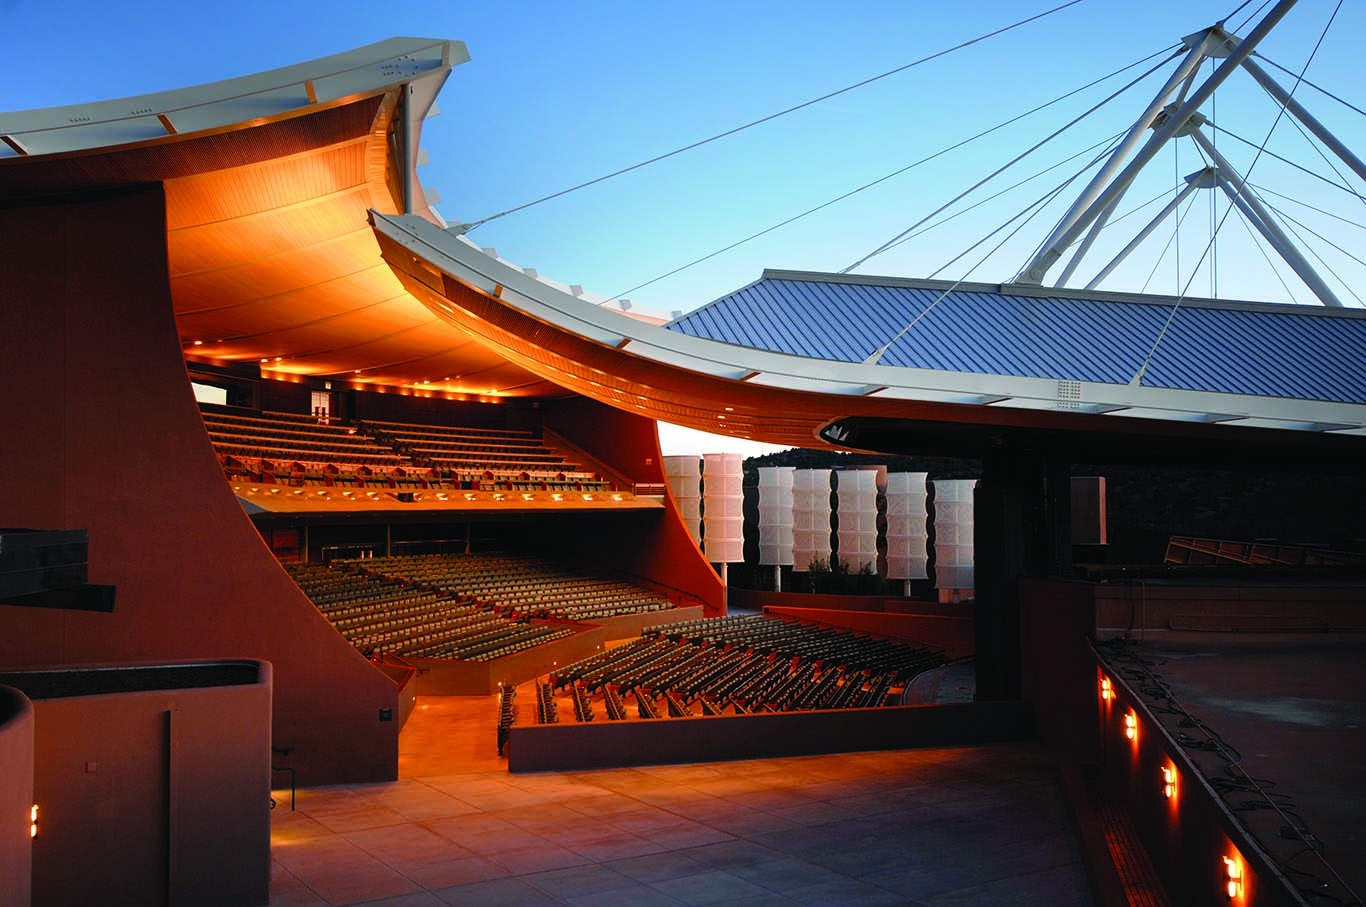 Sunset at the open-air Santa Fe Opera House.